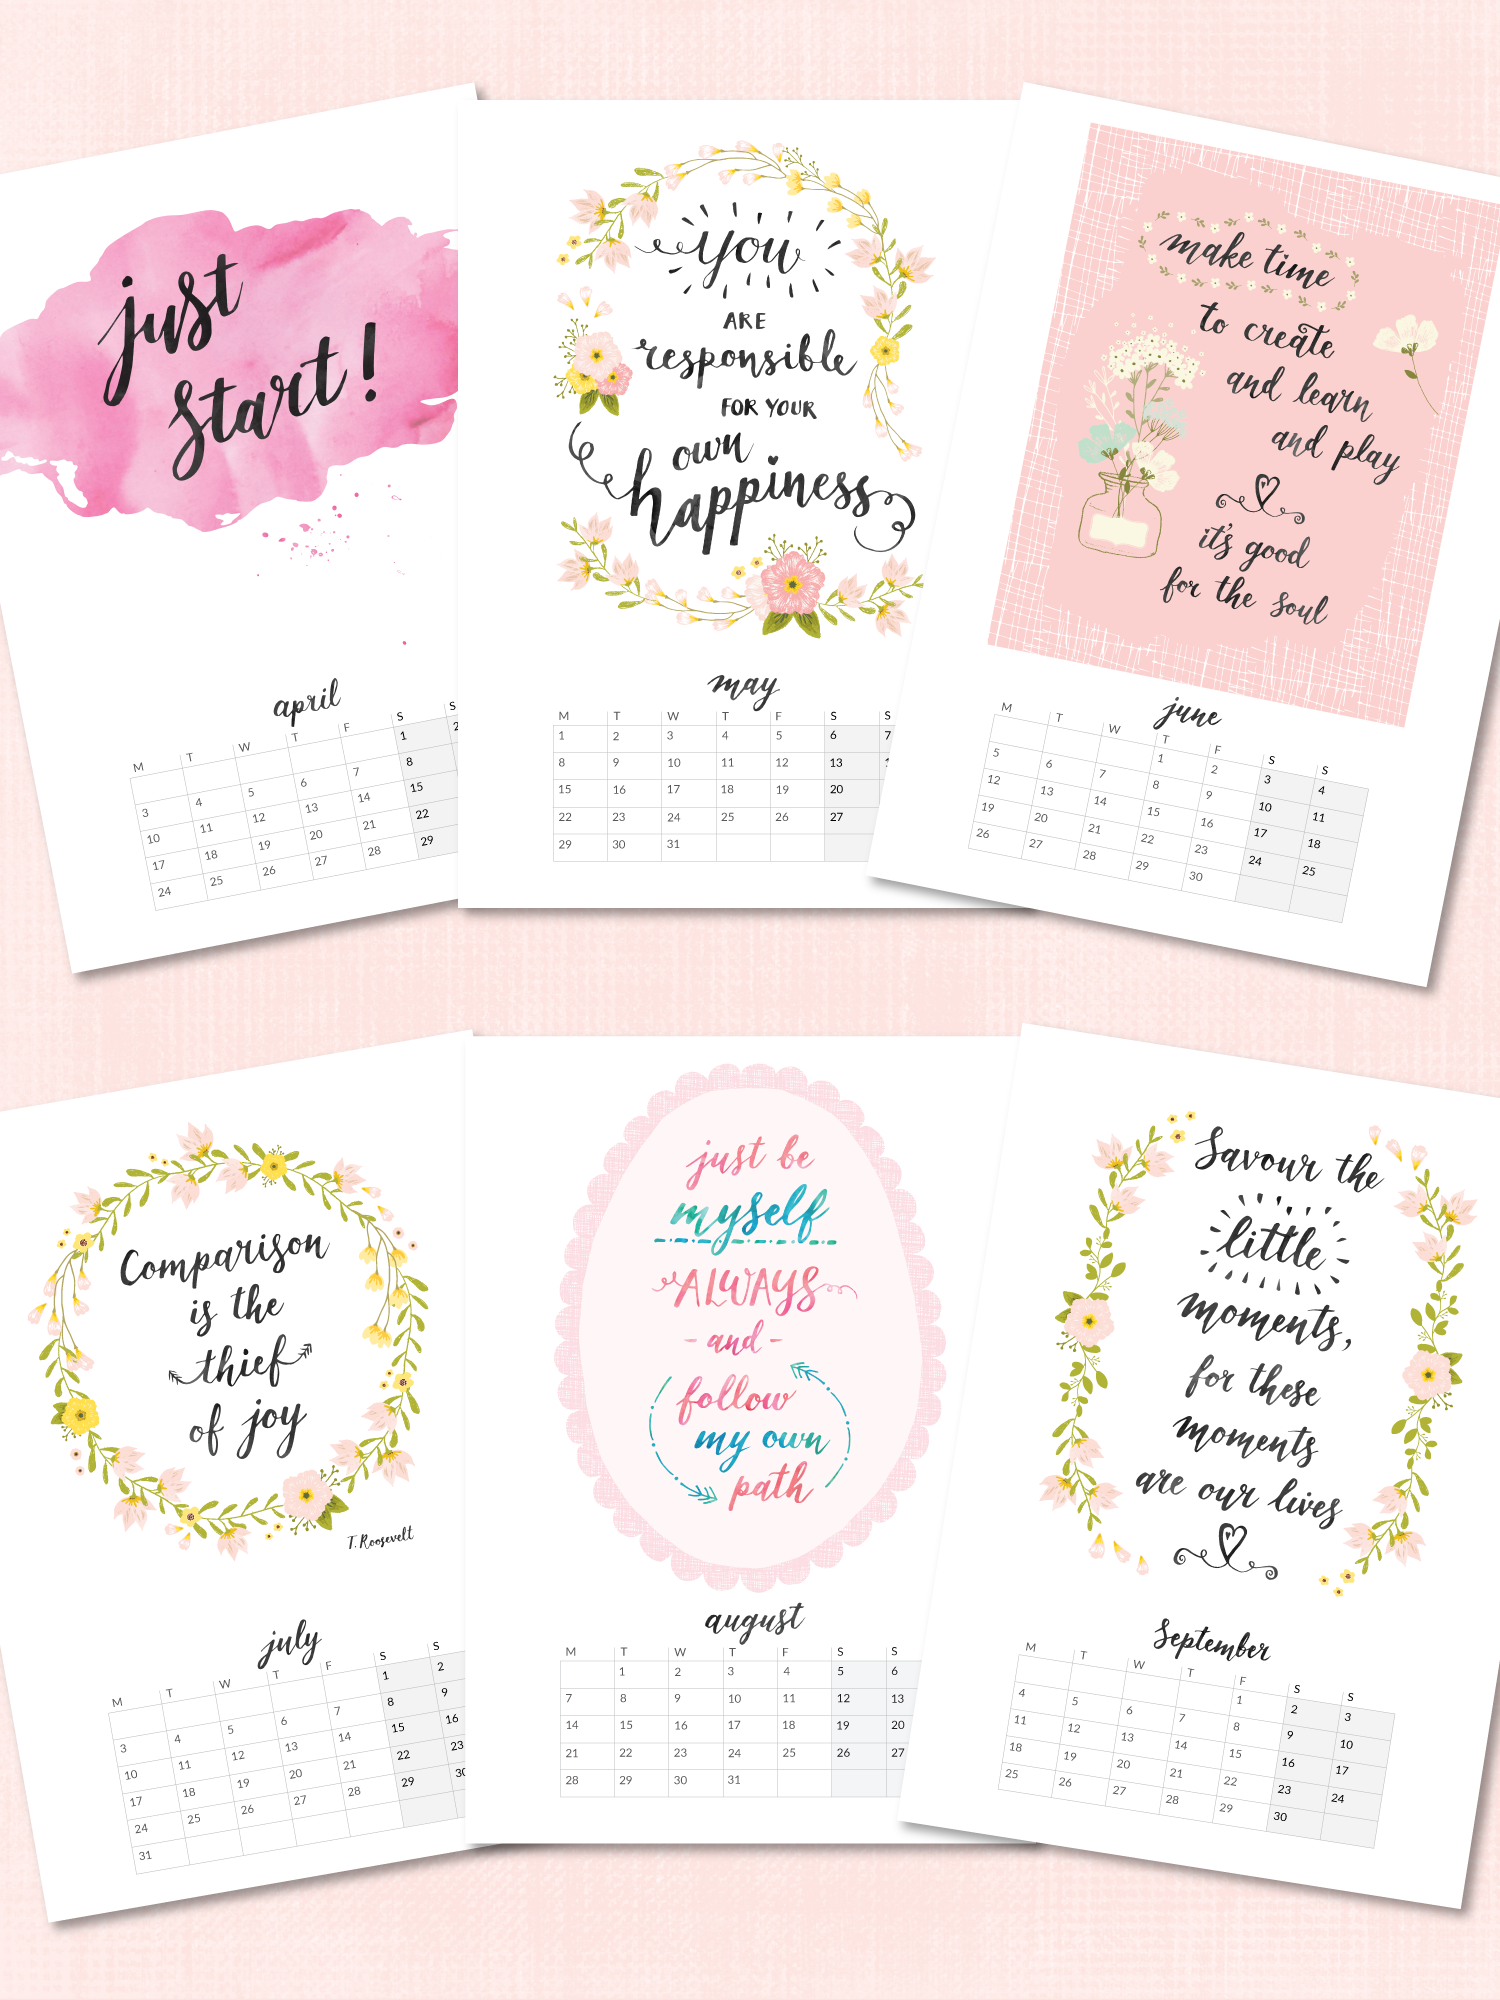 Inspirational Quotes printable calendar 2017.png